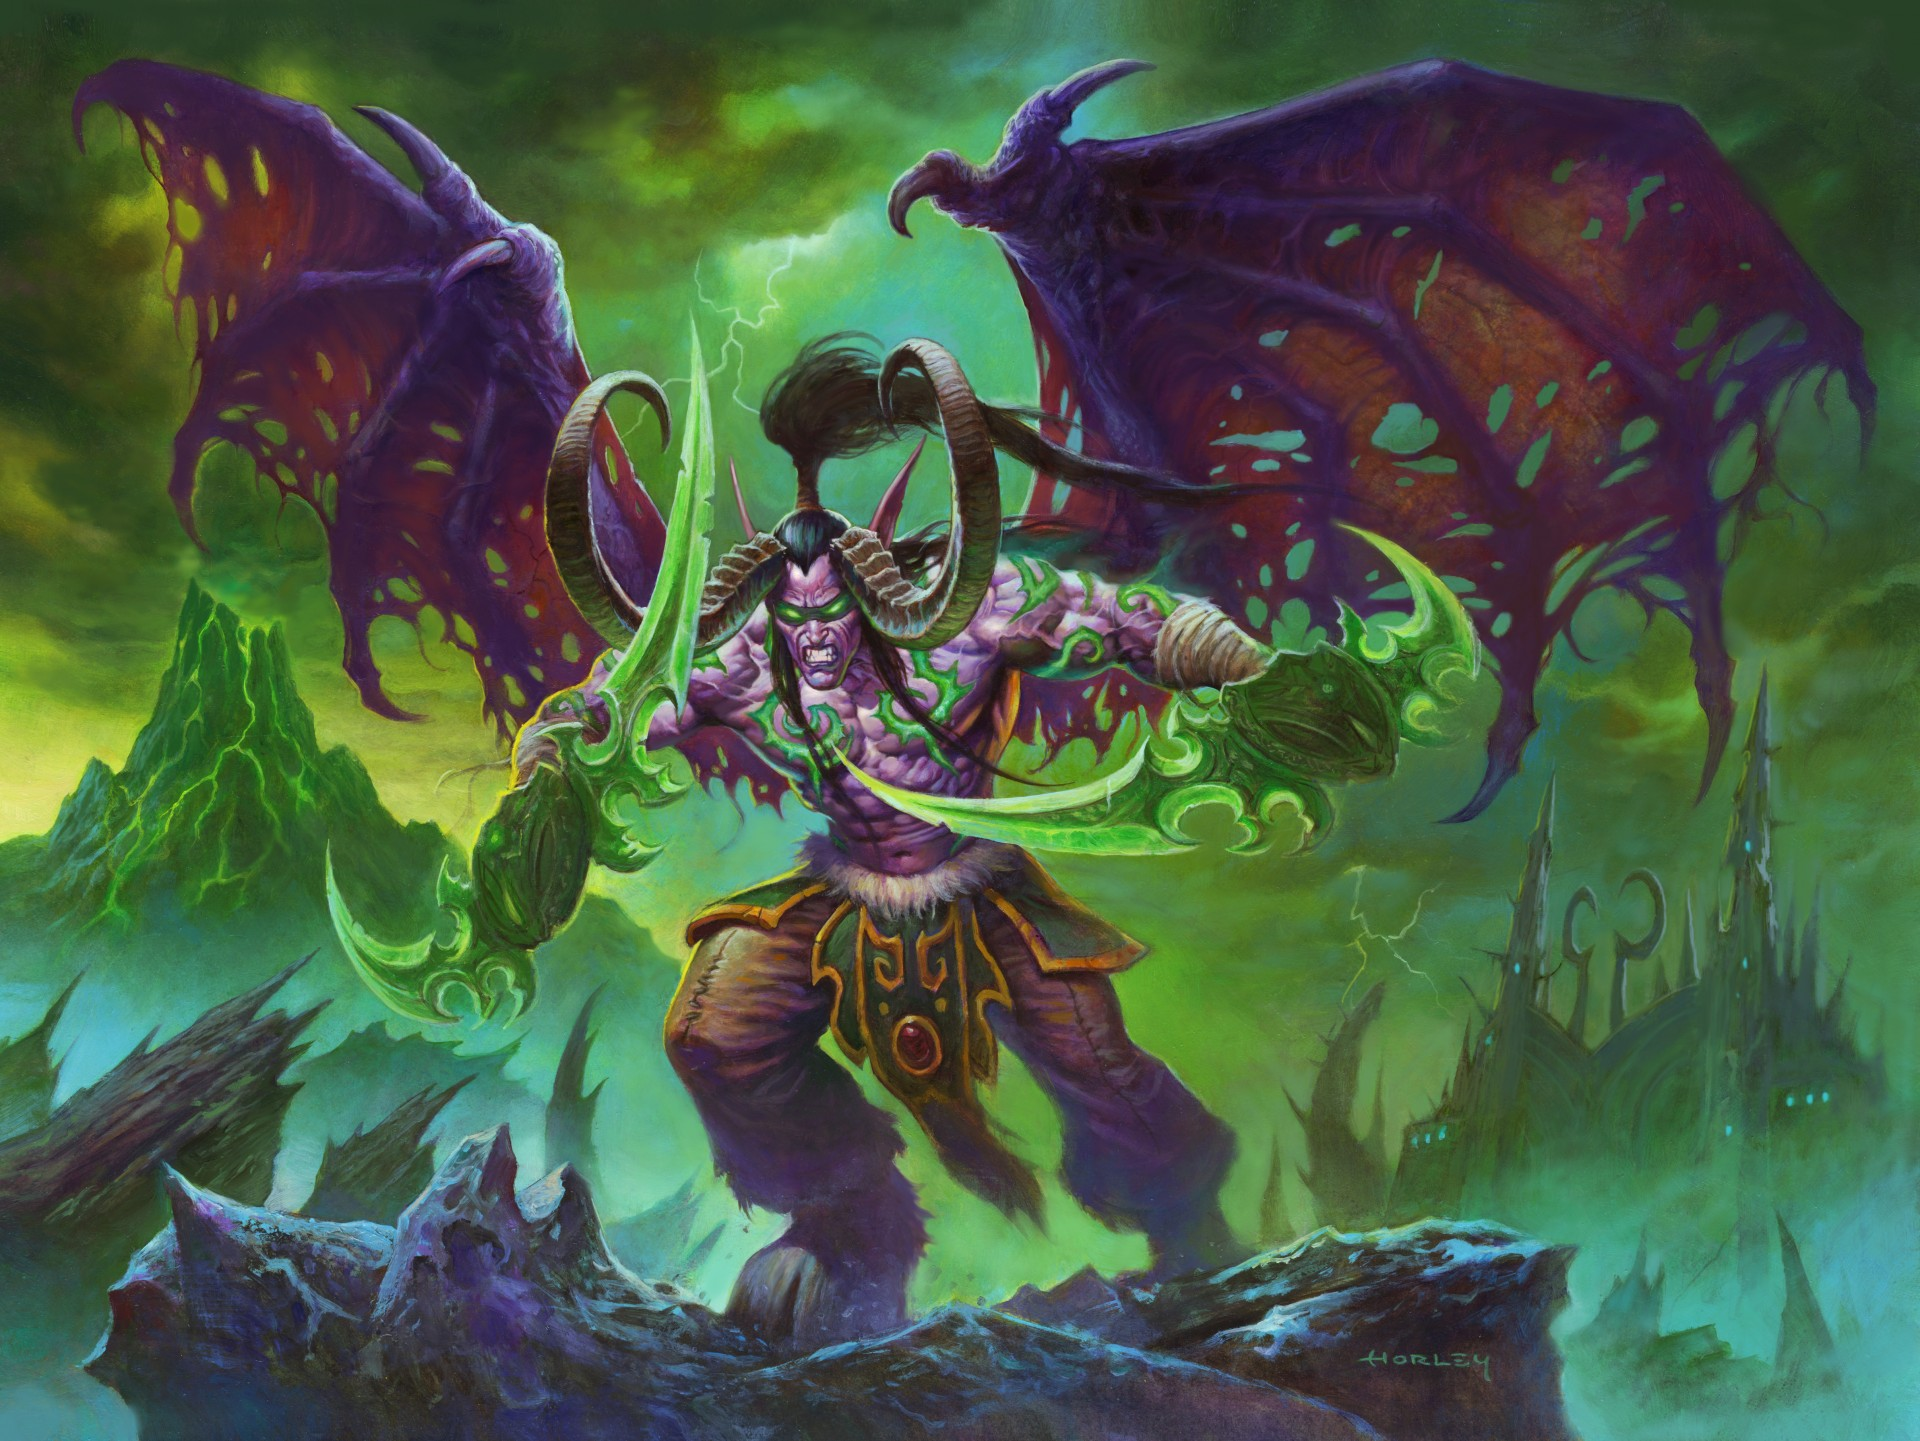 Torrent joins the Shaman class in Hearthstone's Ashes of Outland expansion